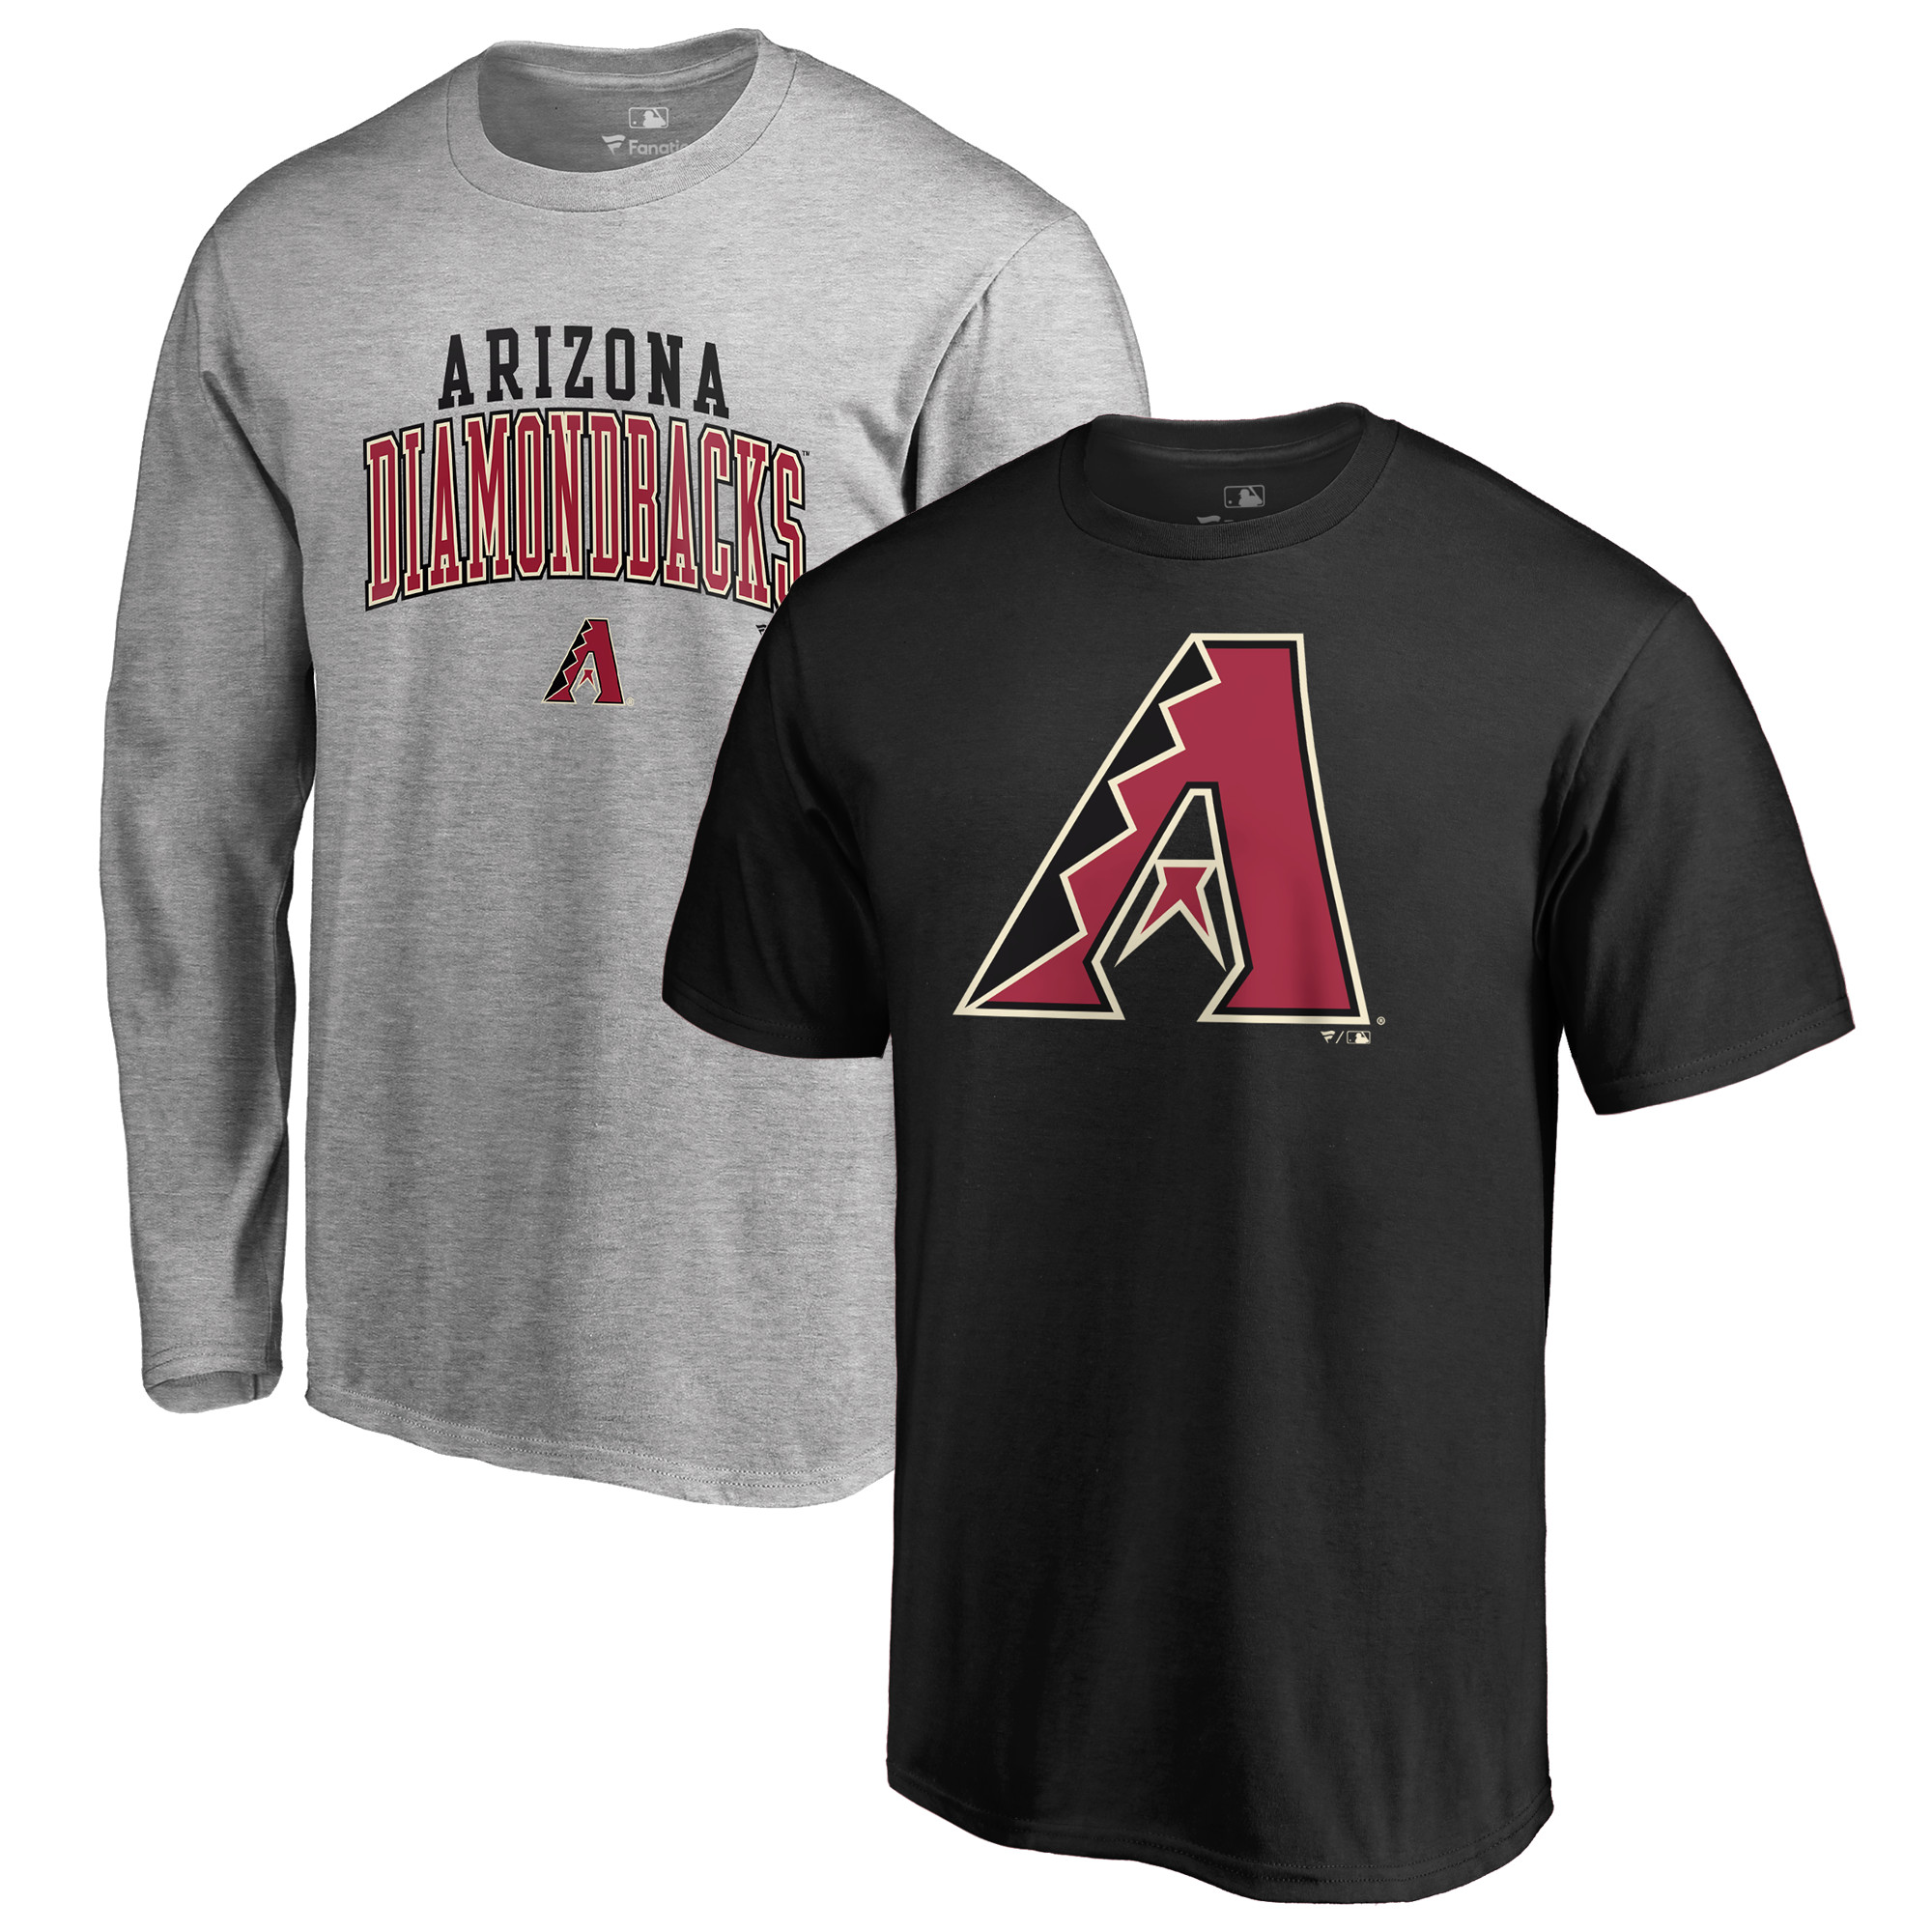 Arizona Diamondbacks Fanatics Branded T-Shirt Combo Set - Black/Gray